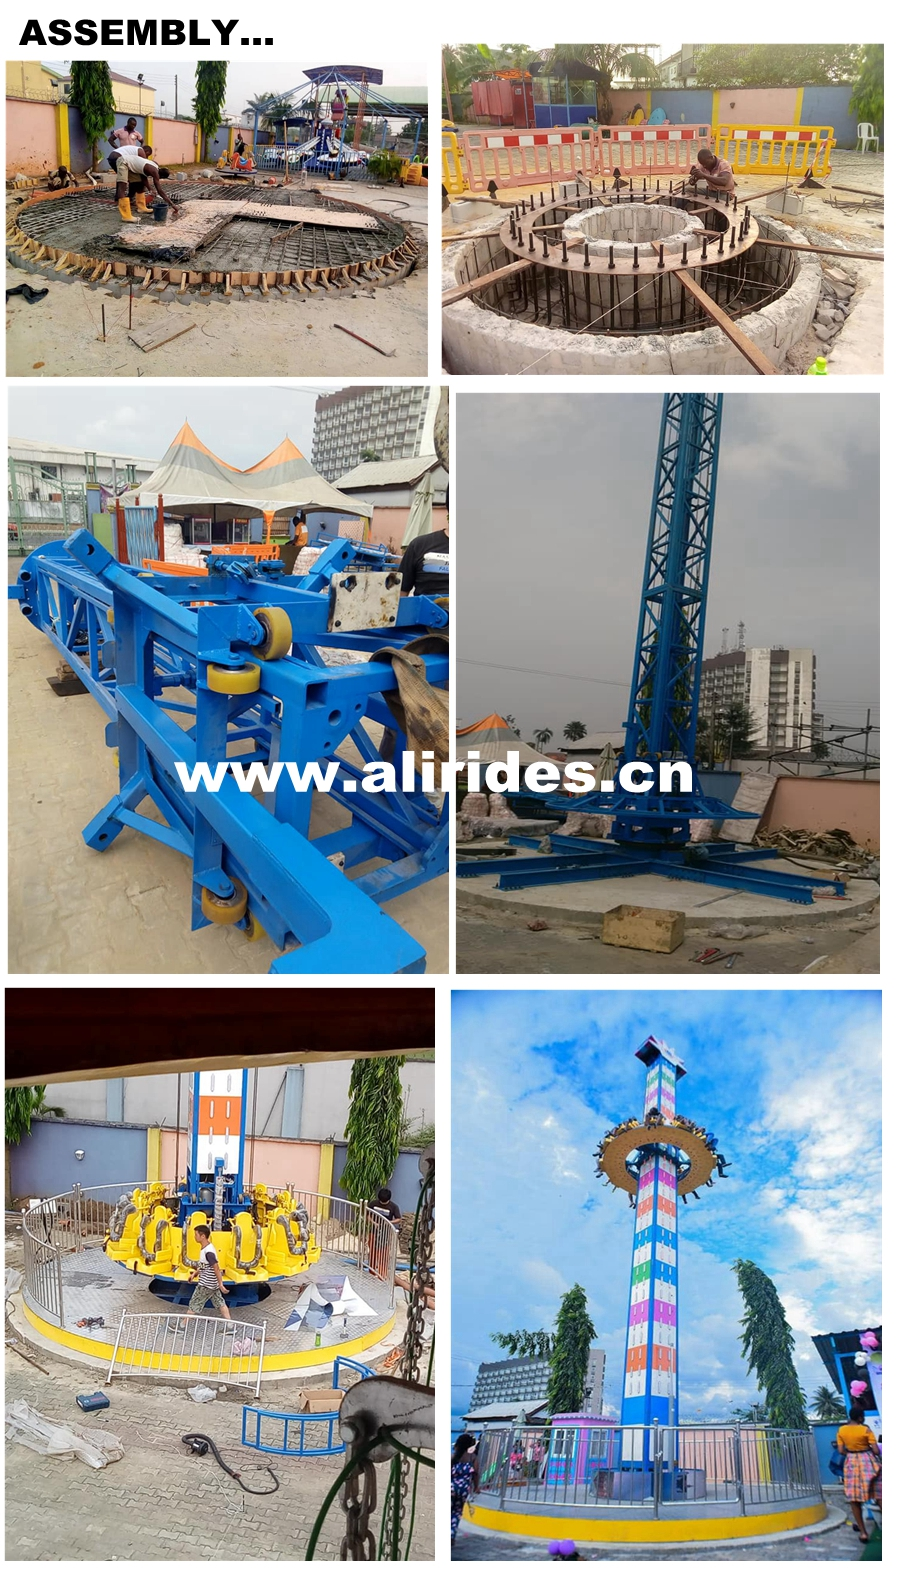 [Ali Brothers]Funfair Park Rides Amusement Drop Tower Ride Jumping Circle Ride